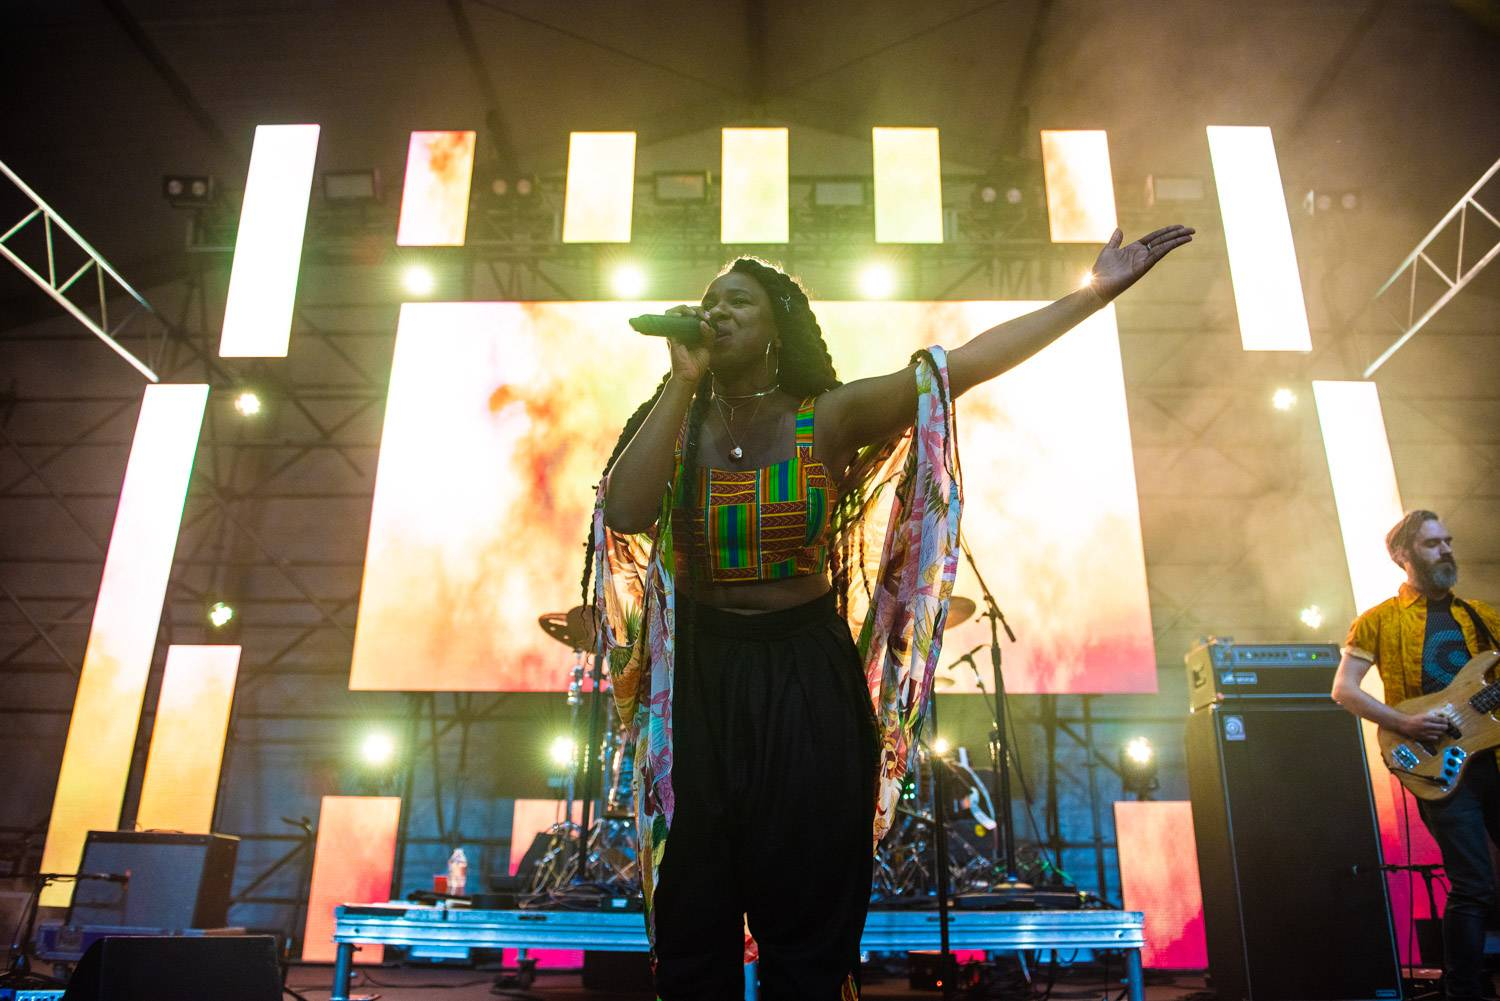 NAO at the Sasquatch Music Festival 2018 - Day 1, Gorge WA, May 25 2018. Pavel Boiko photo.